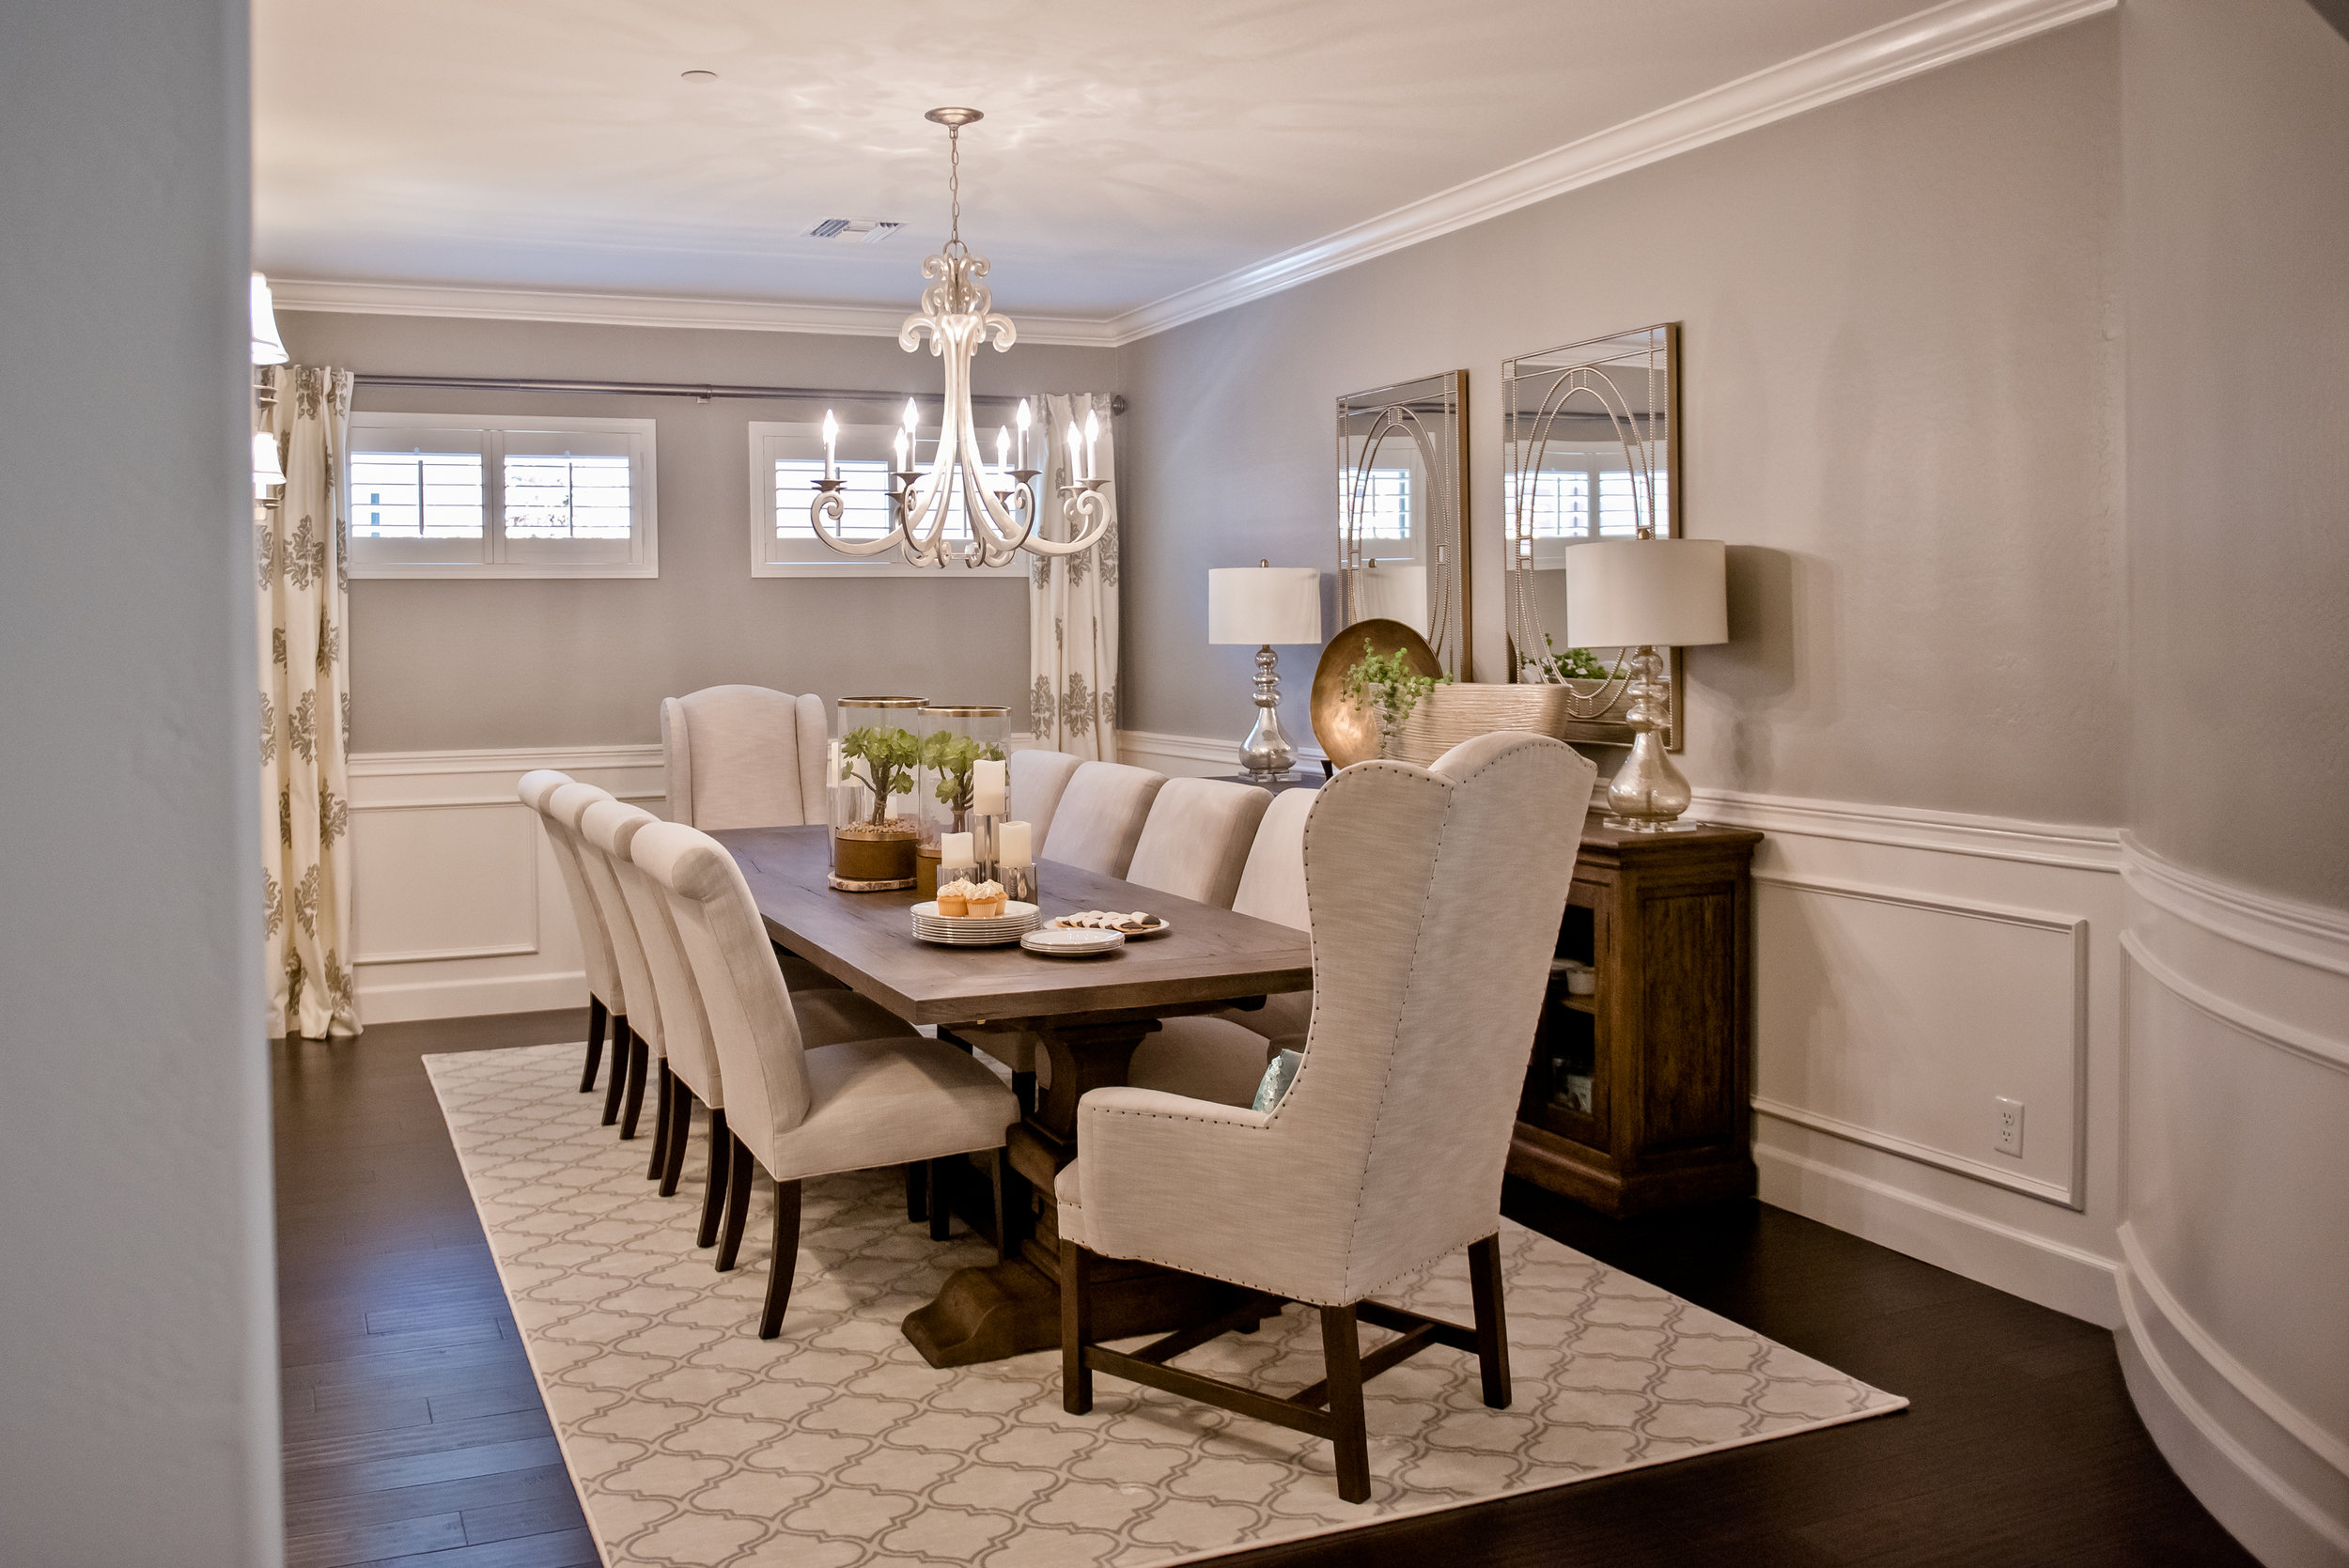 7- Dining+Transitional+Chandelier+RestorationHardware+Scottsdale.jpg